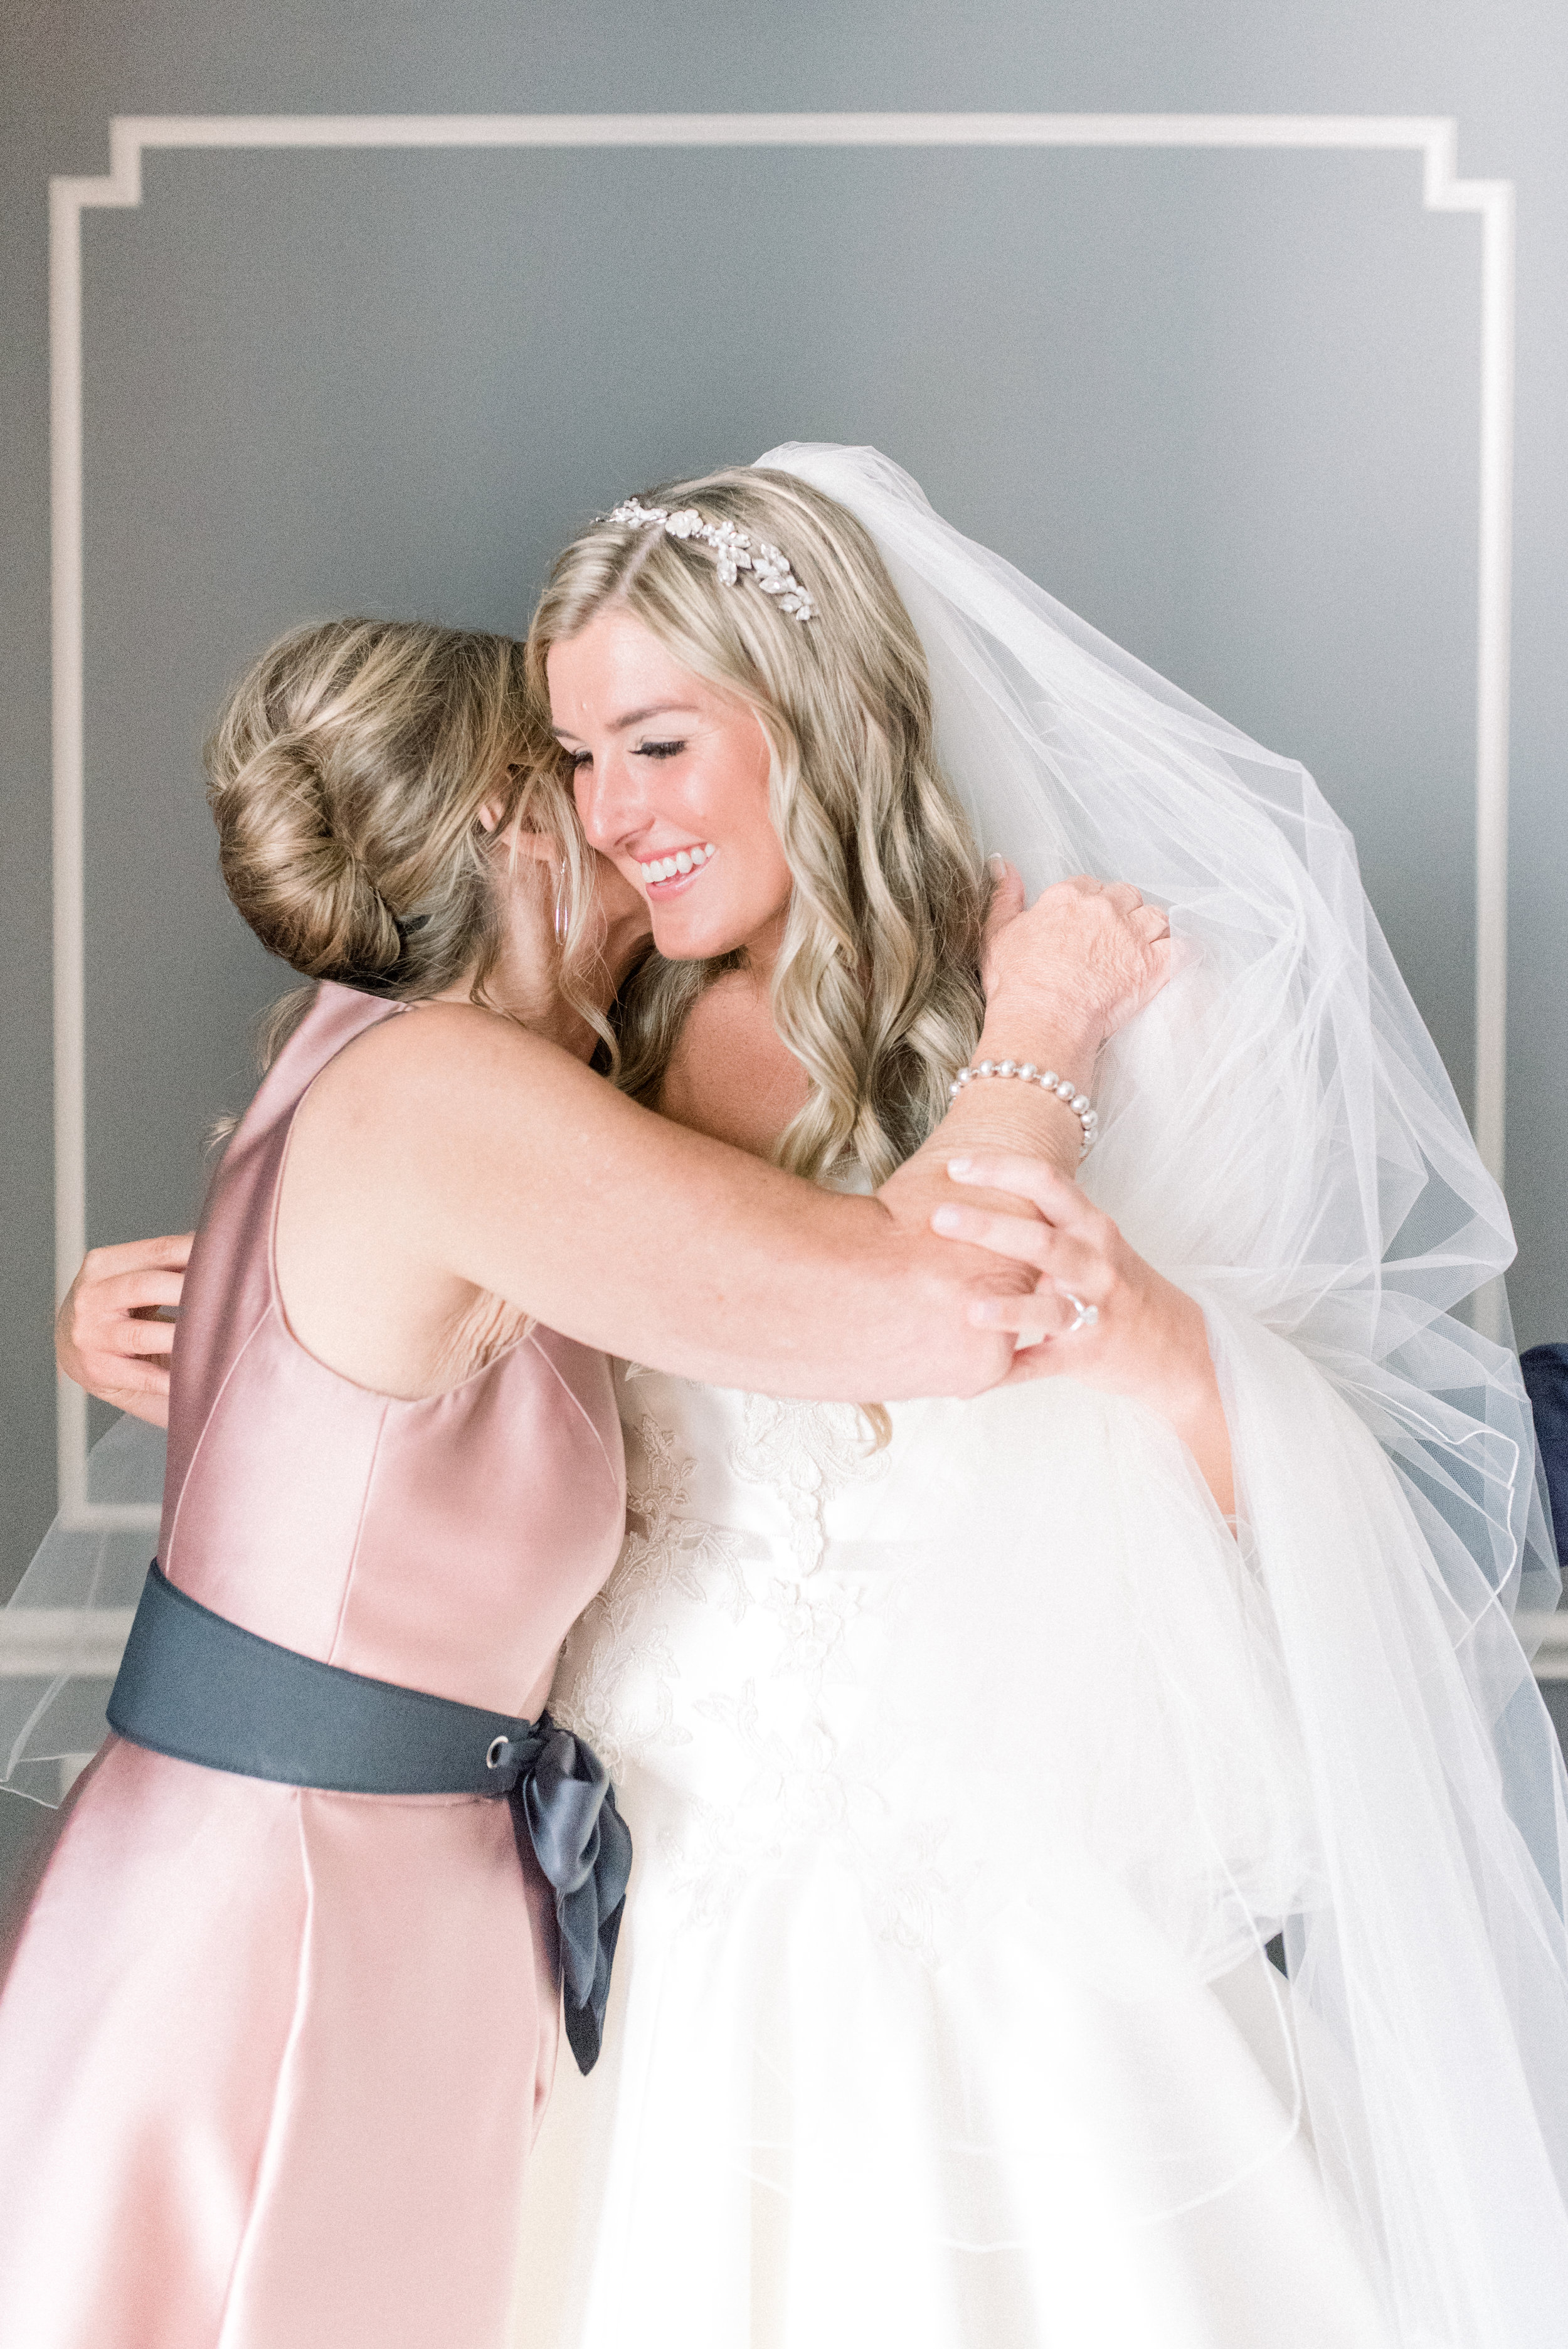 bride and her mom on wedding day.jpg